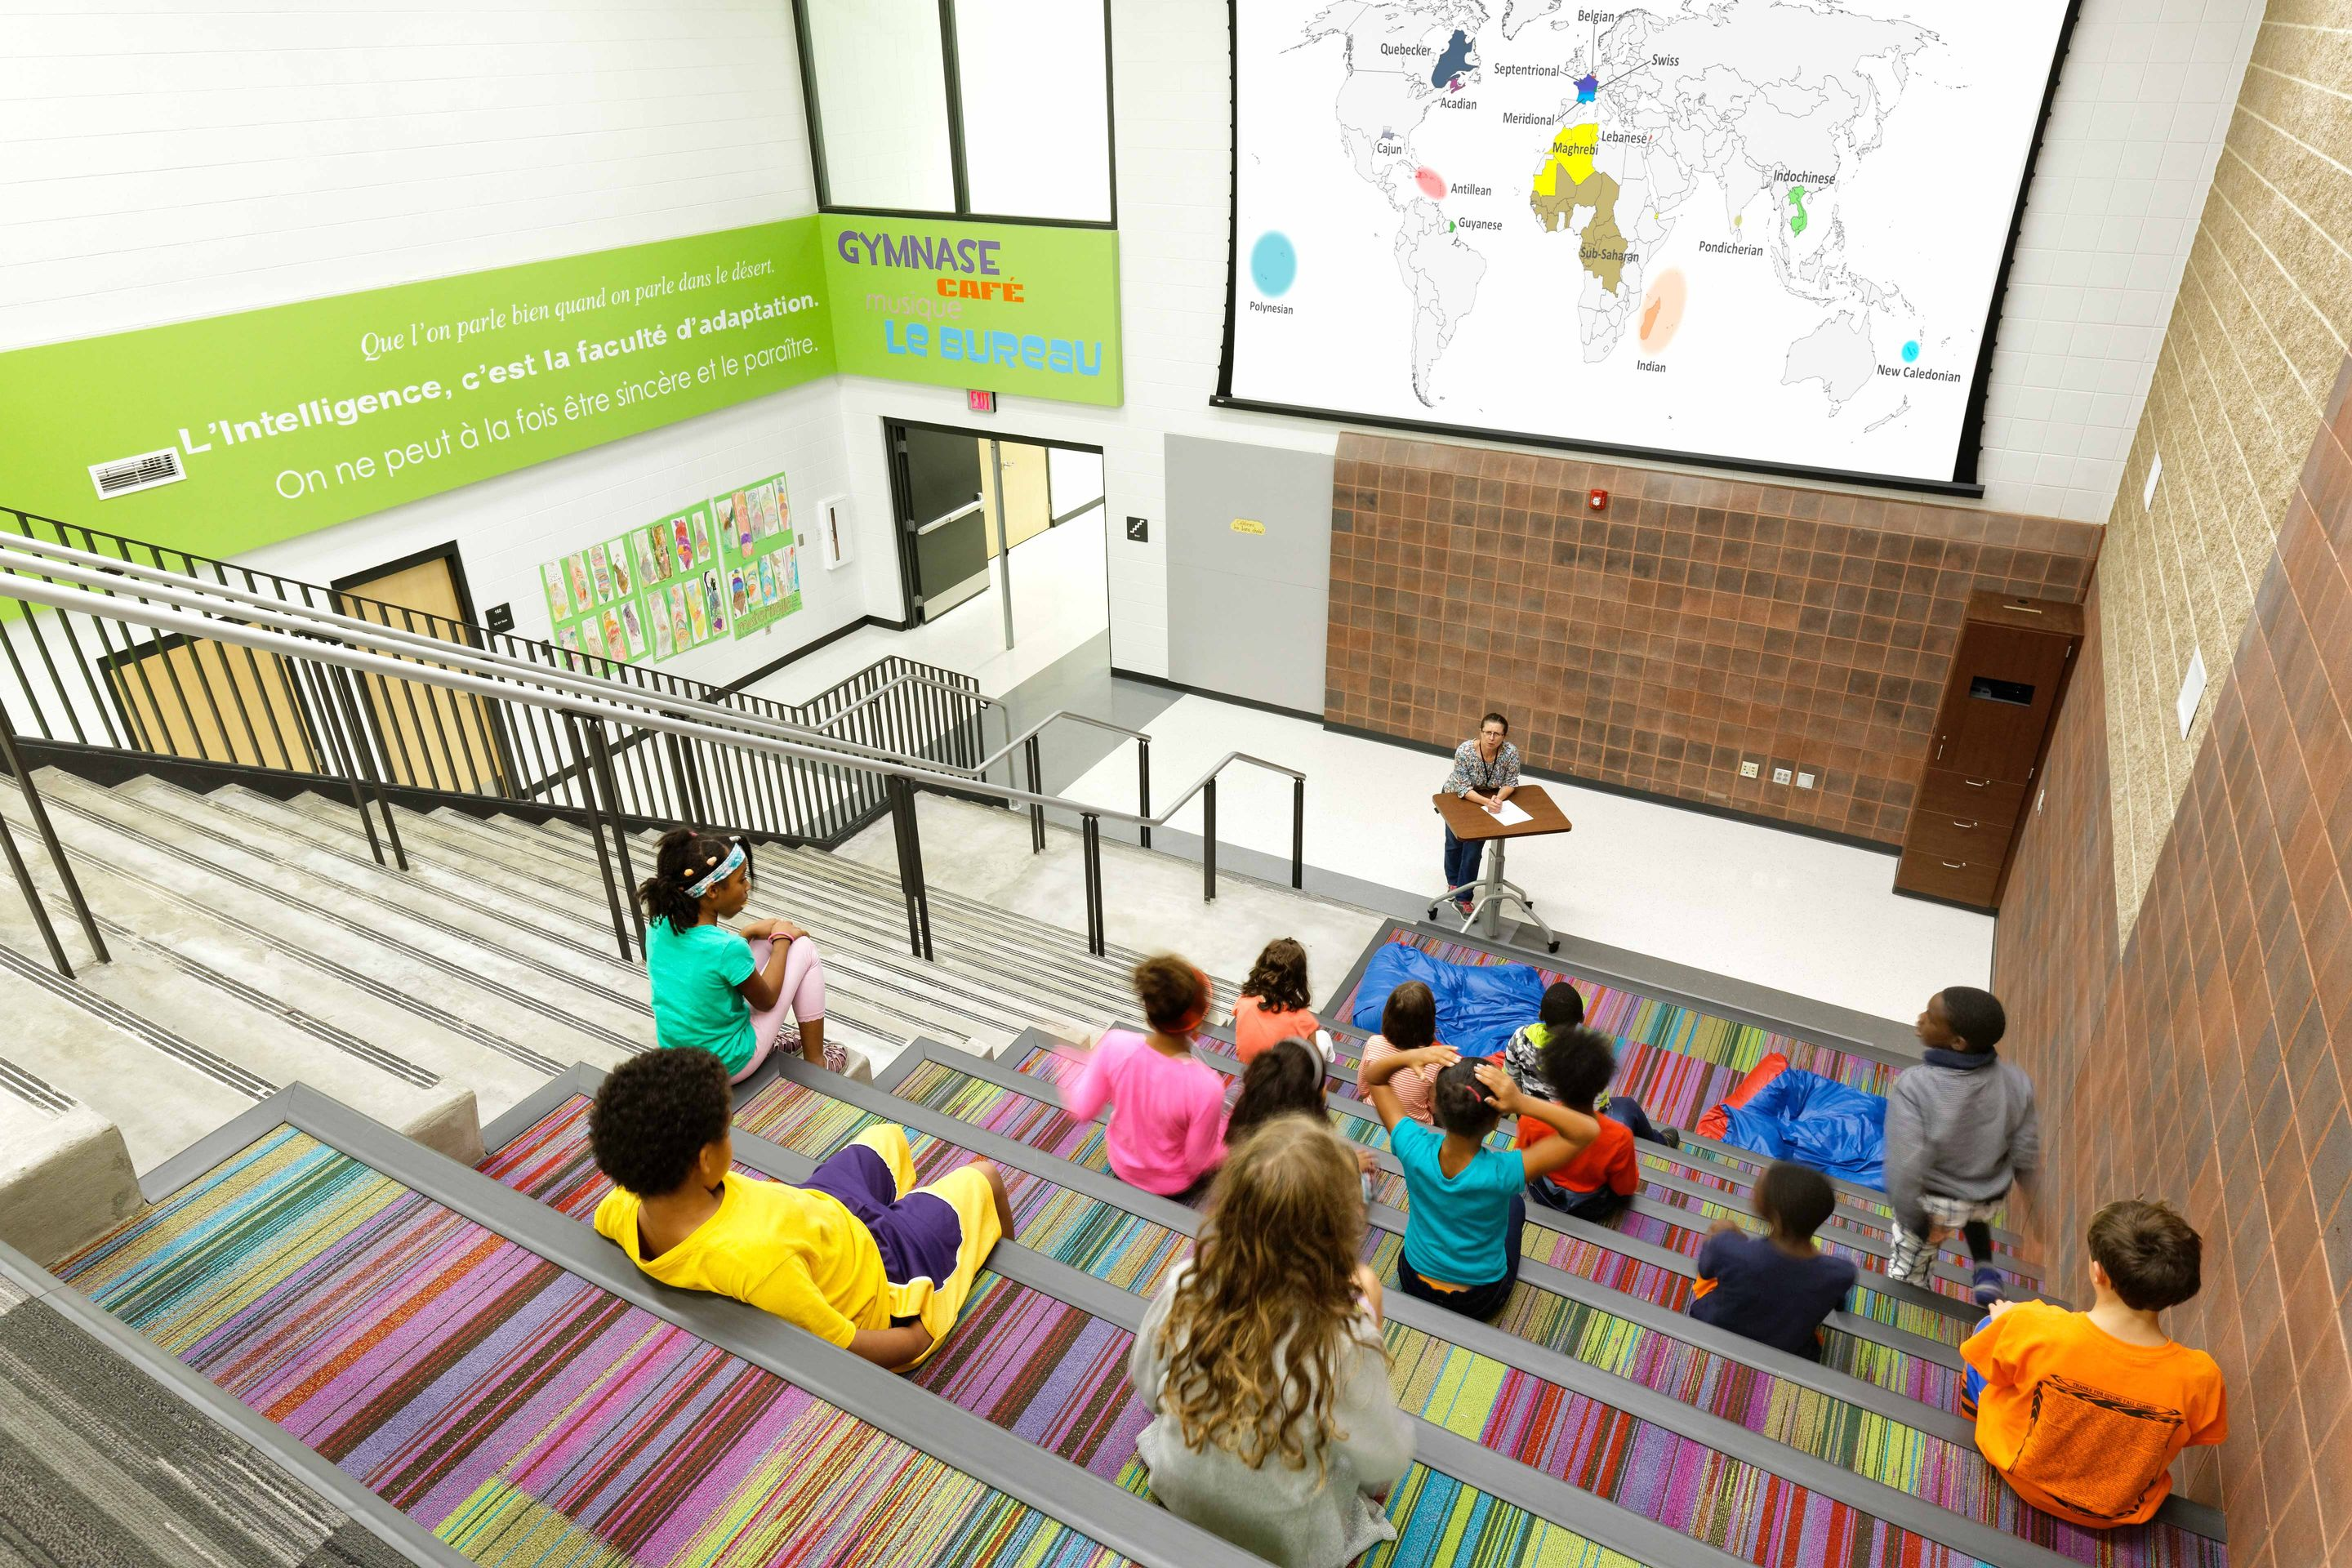 At Ecole Kenwood French Immersion School, the stairwell has transformed into a multipurpose space for lectures, presentations, collaboration, and socialization.